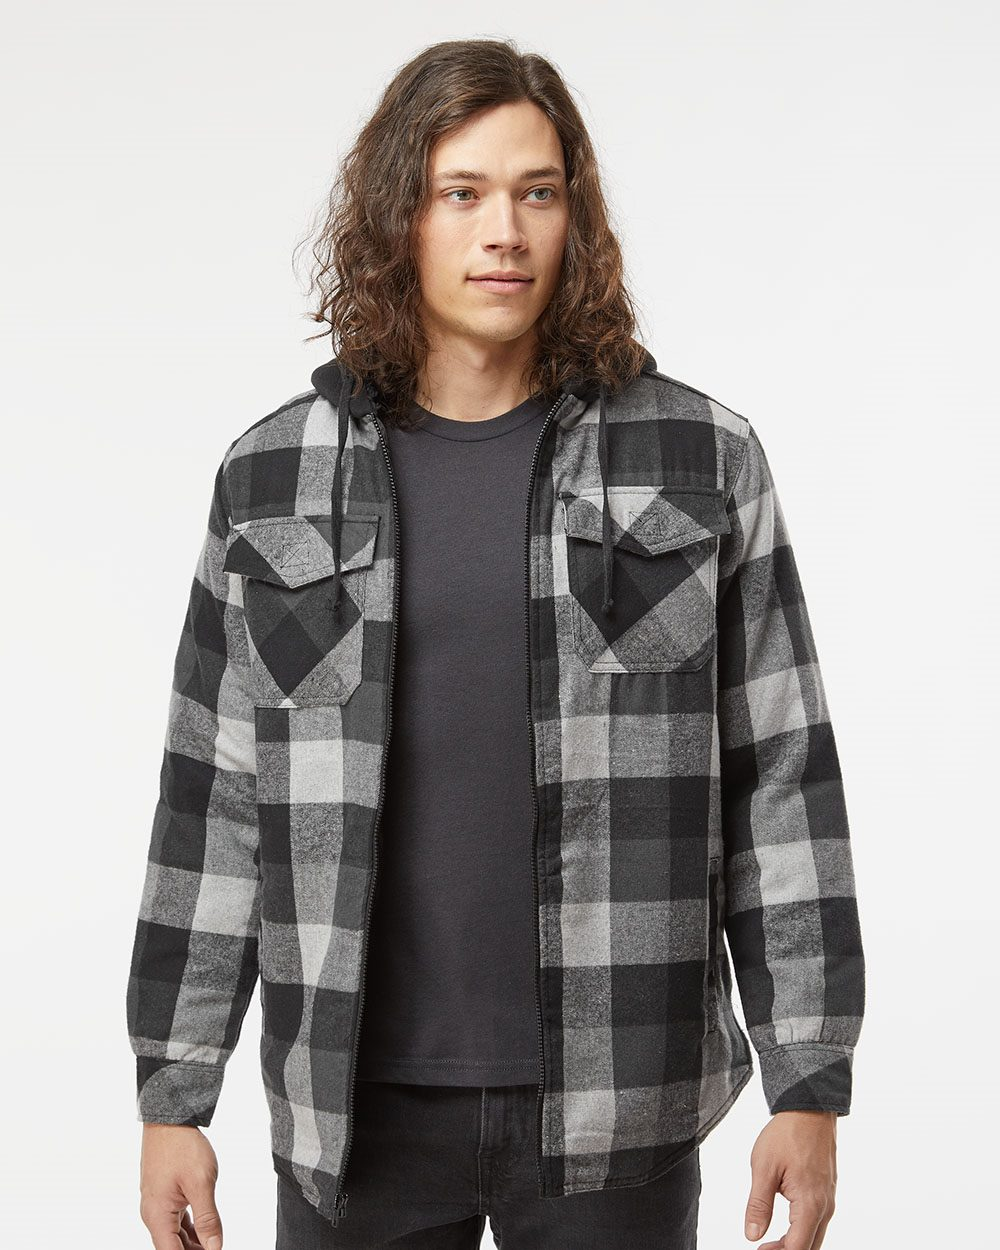 Burnside Mens 8620 Plaid Quilted Lined Flannel Full-Zip Hooded Jacket